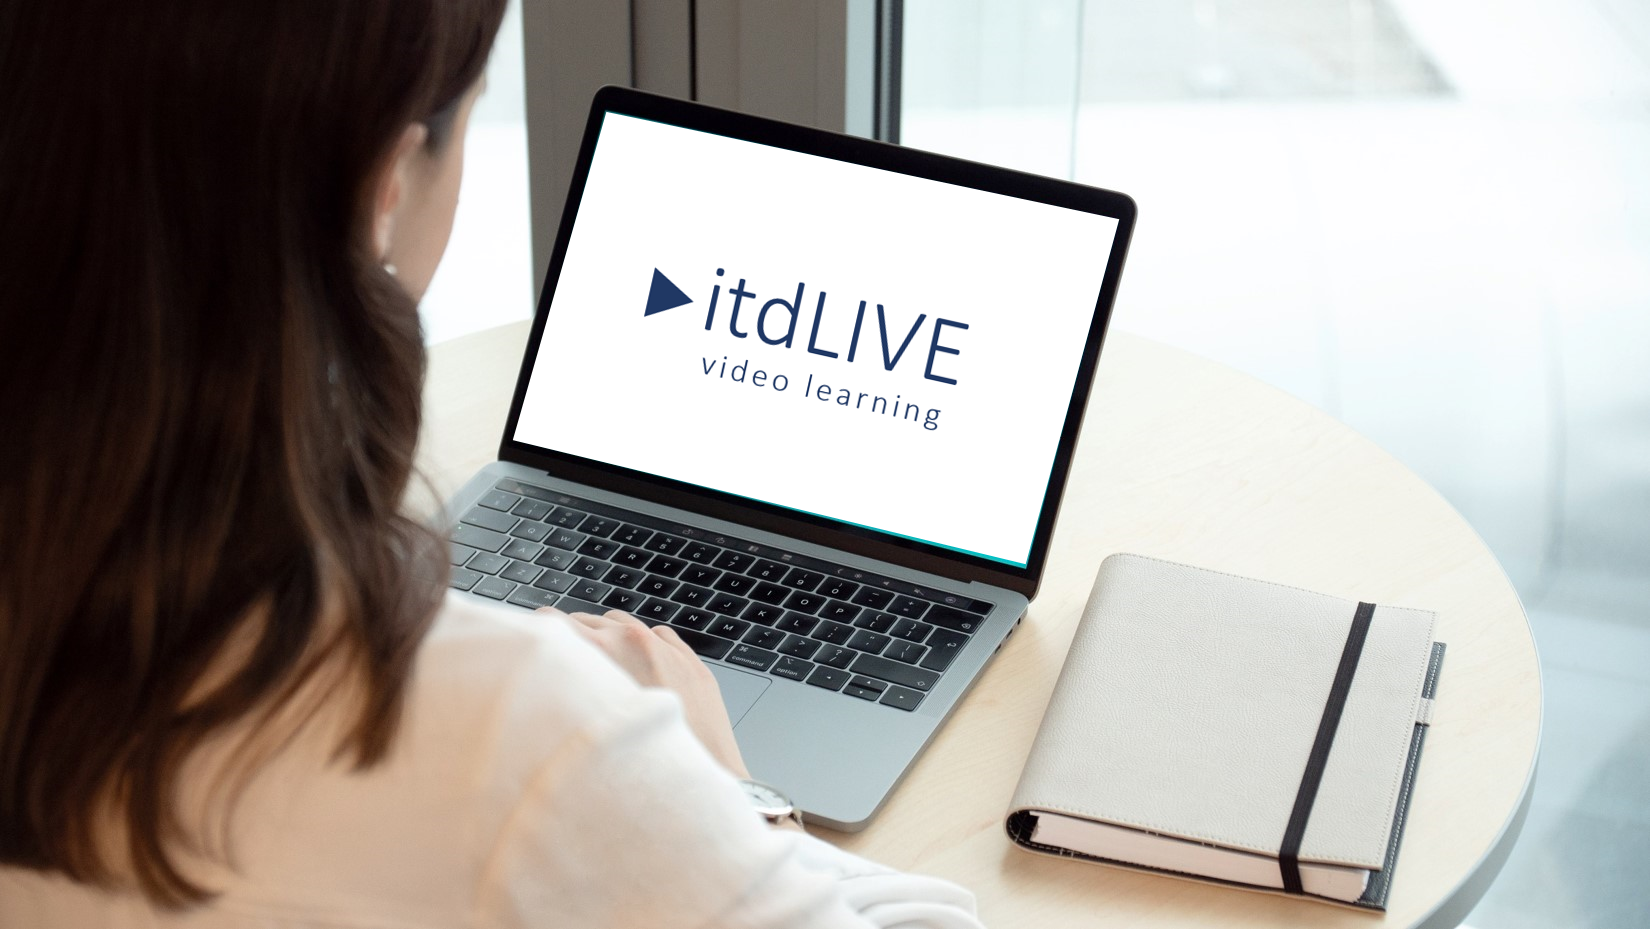 itdlive online presentation skills training